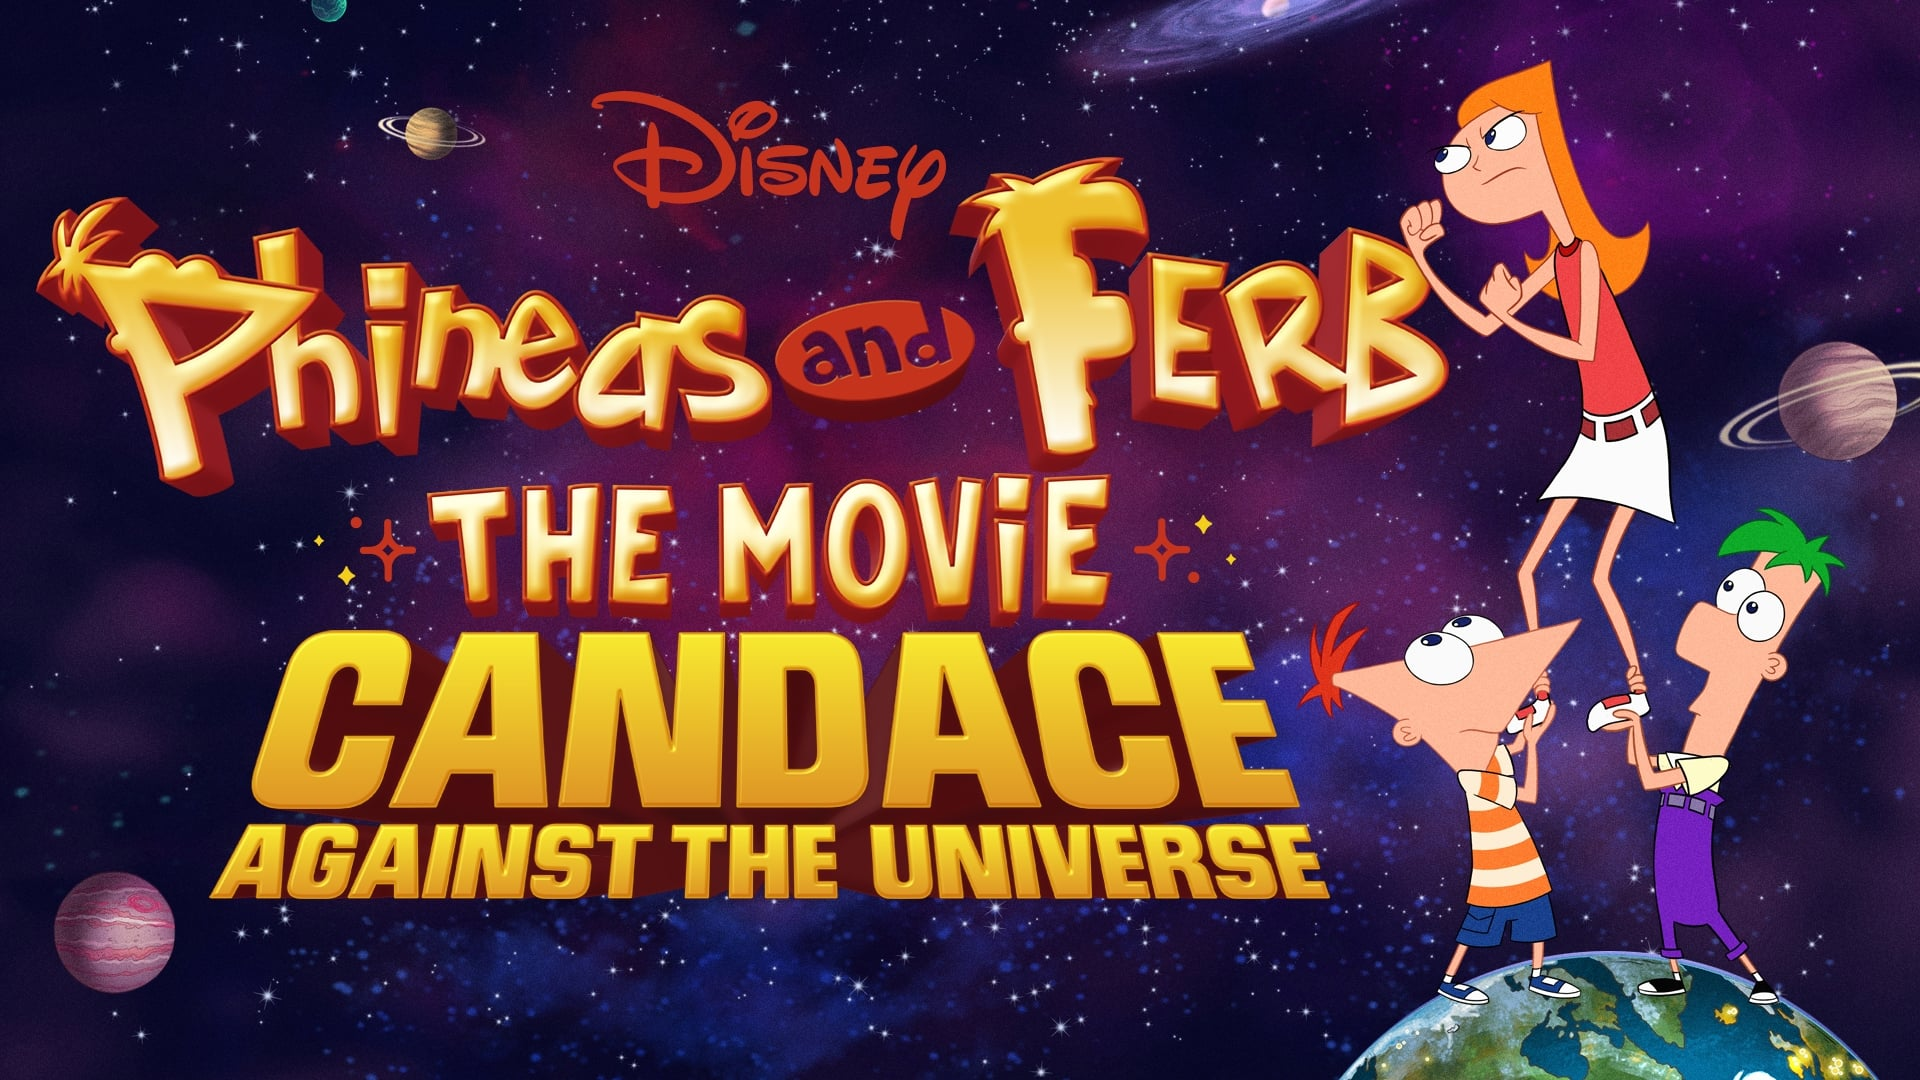 Phineas and Ferb The Movie: Candace Against the Universe (2020)